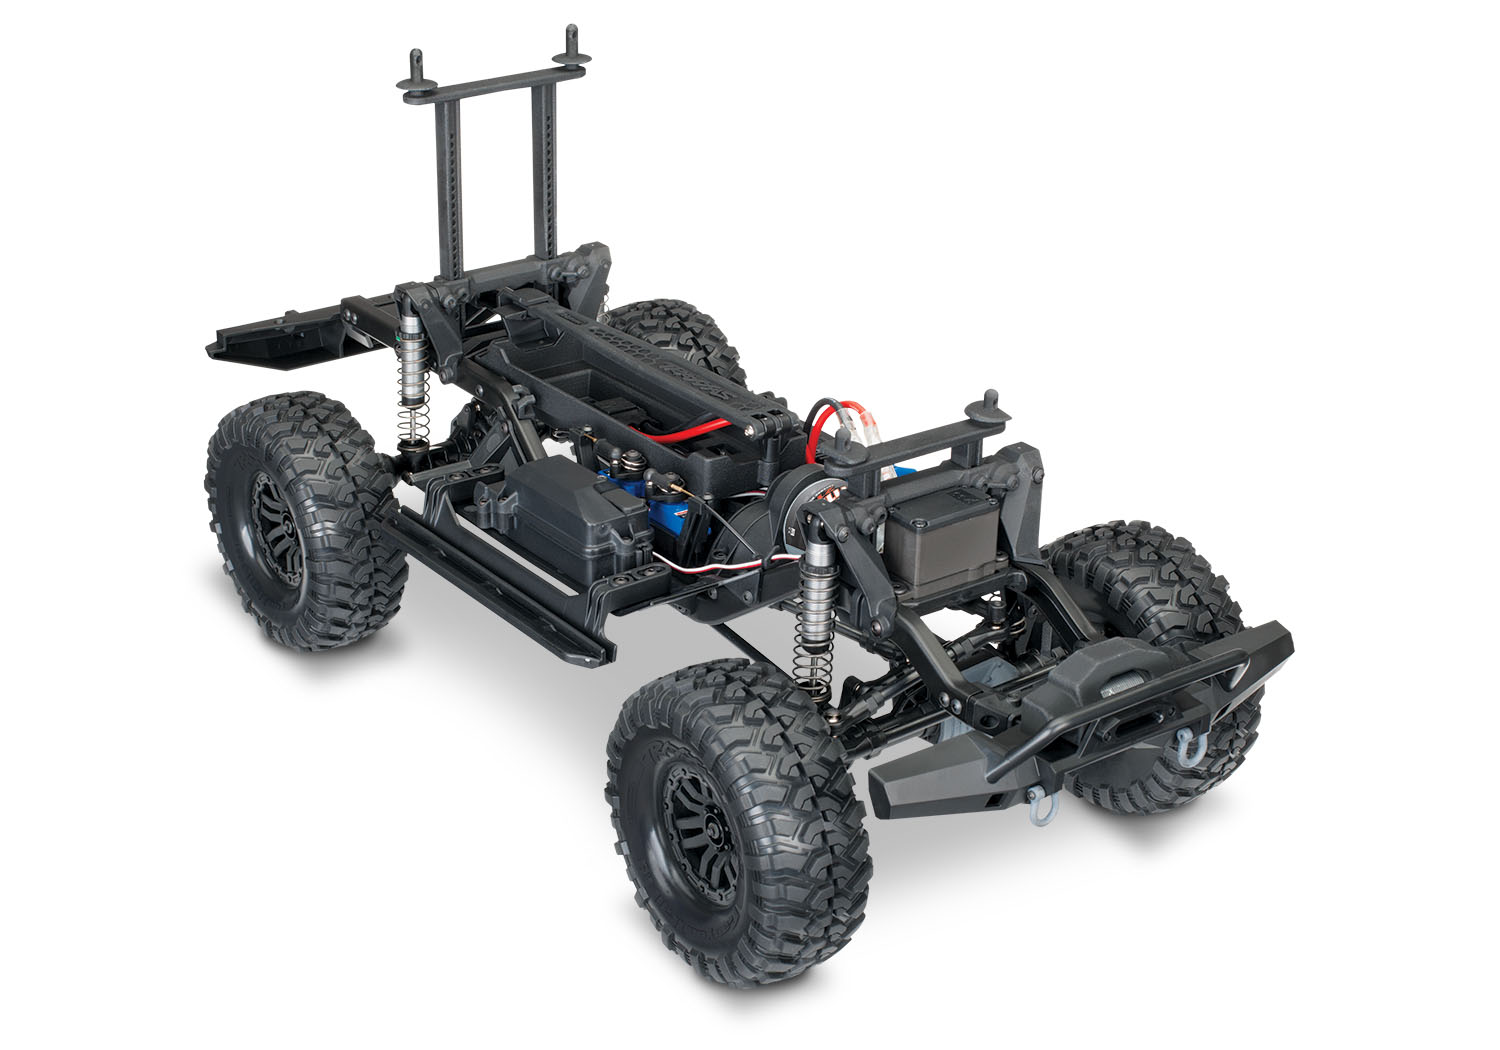 RC Land Rover Defender TRX-4 by Traxxas (1:10 scale